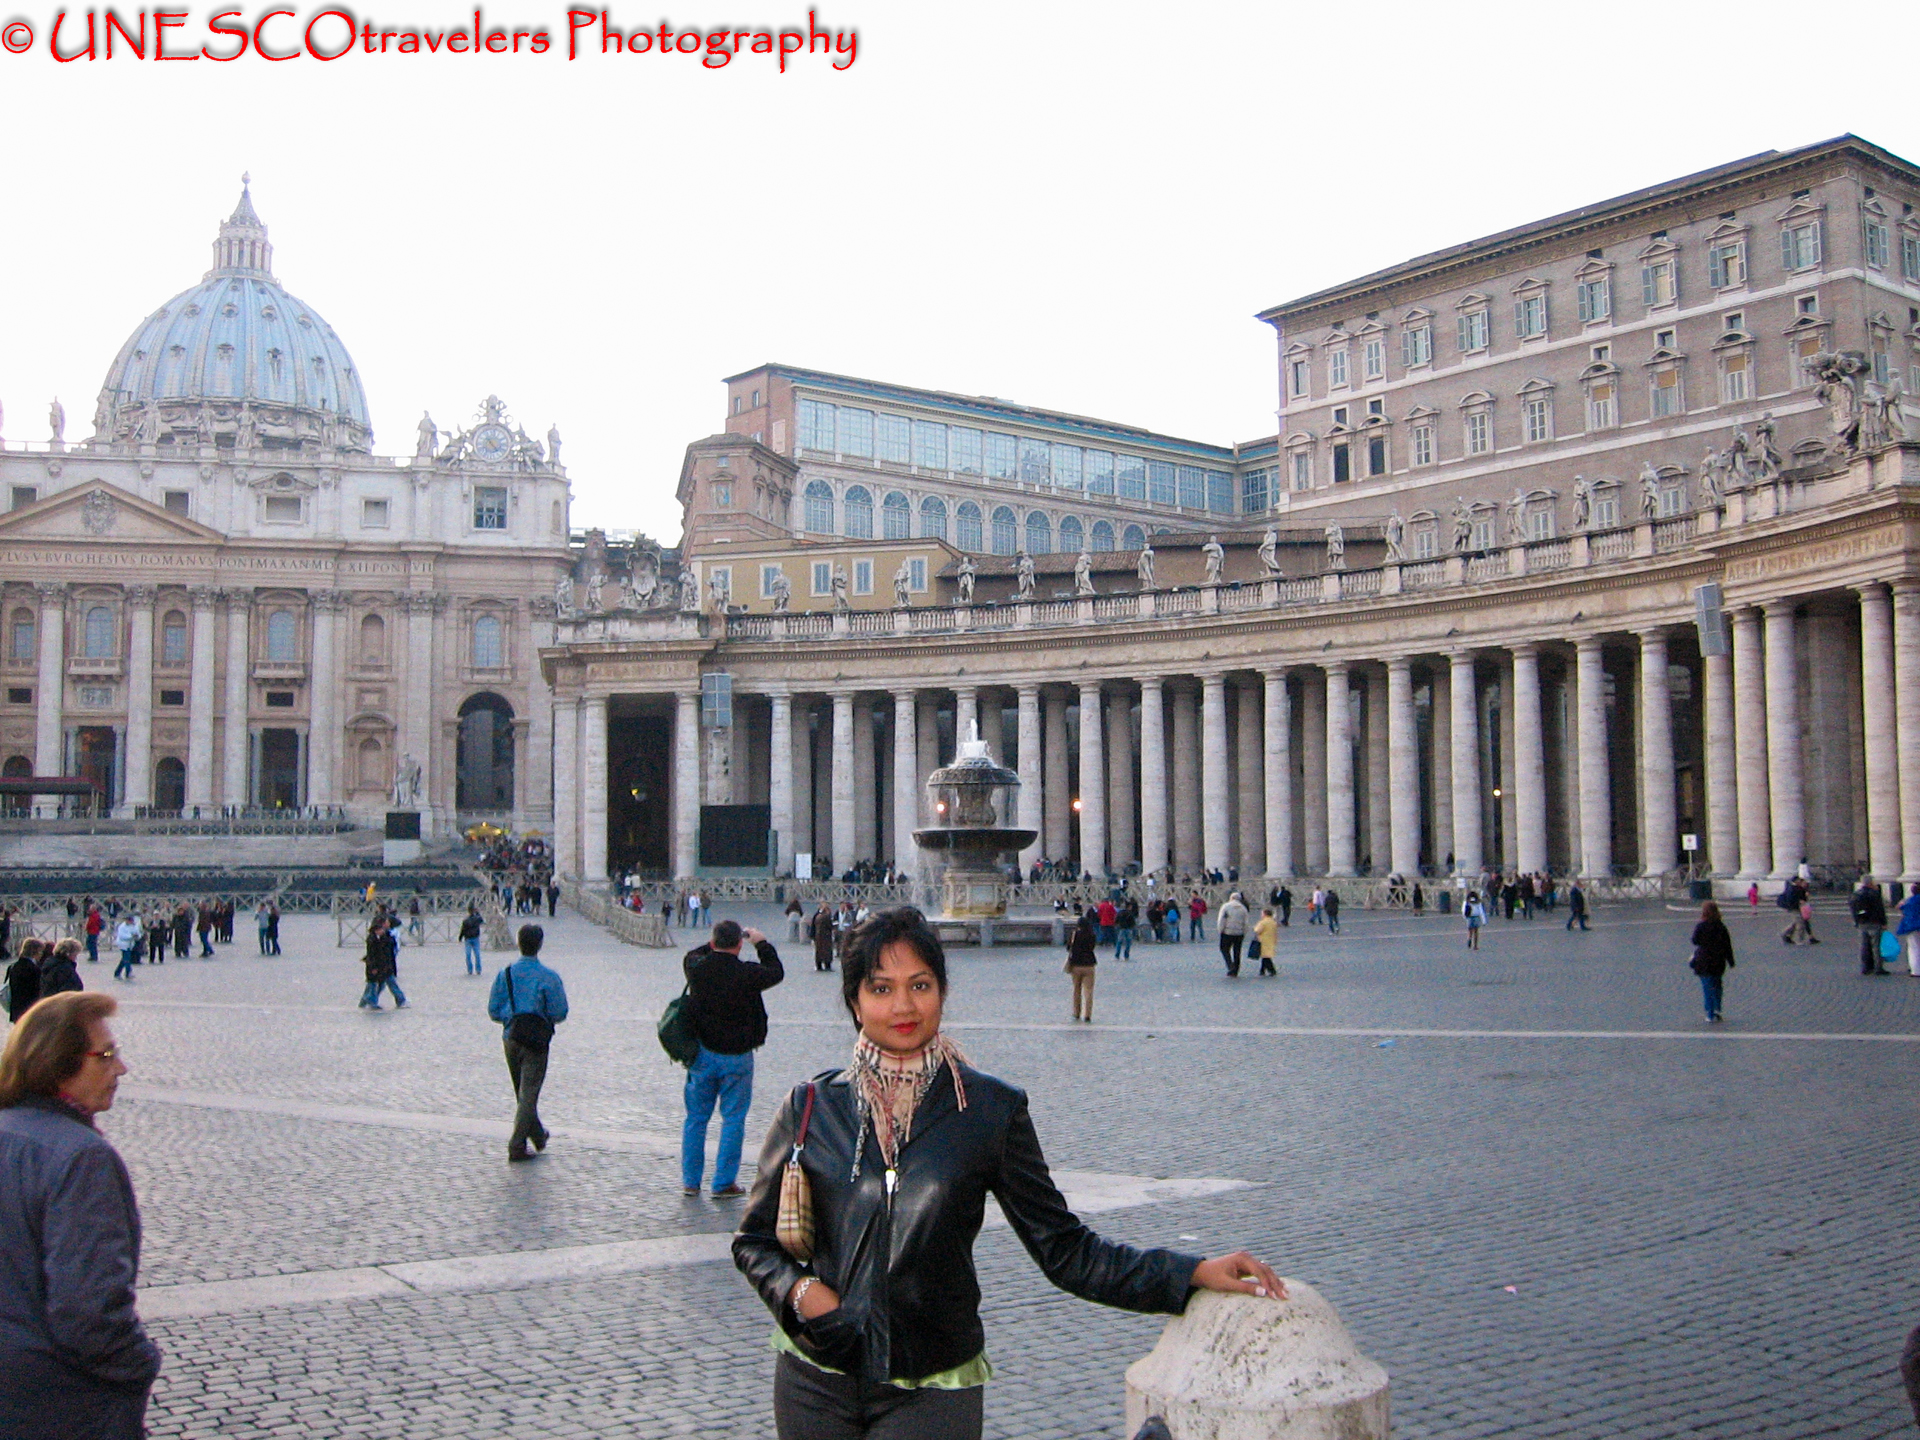 The Smallest Country in the World Vatican City - Holy See By UNESCOtravelers